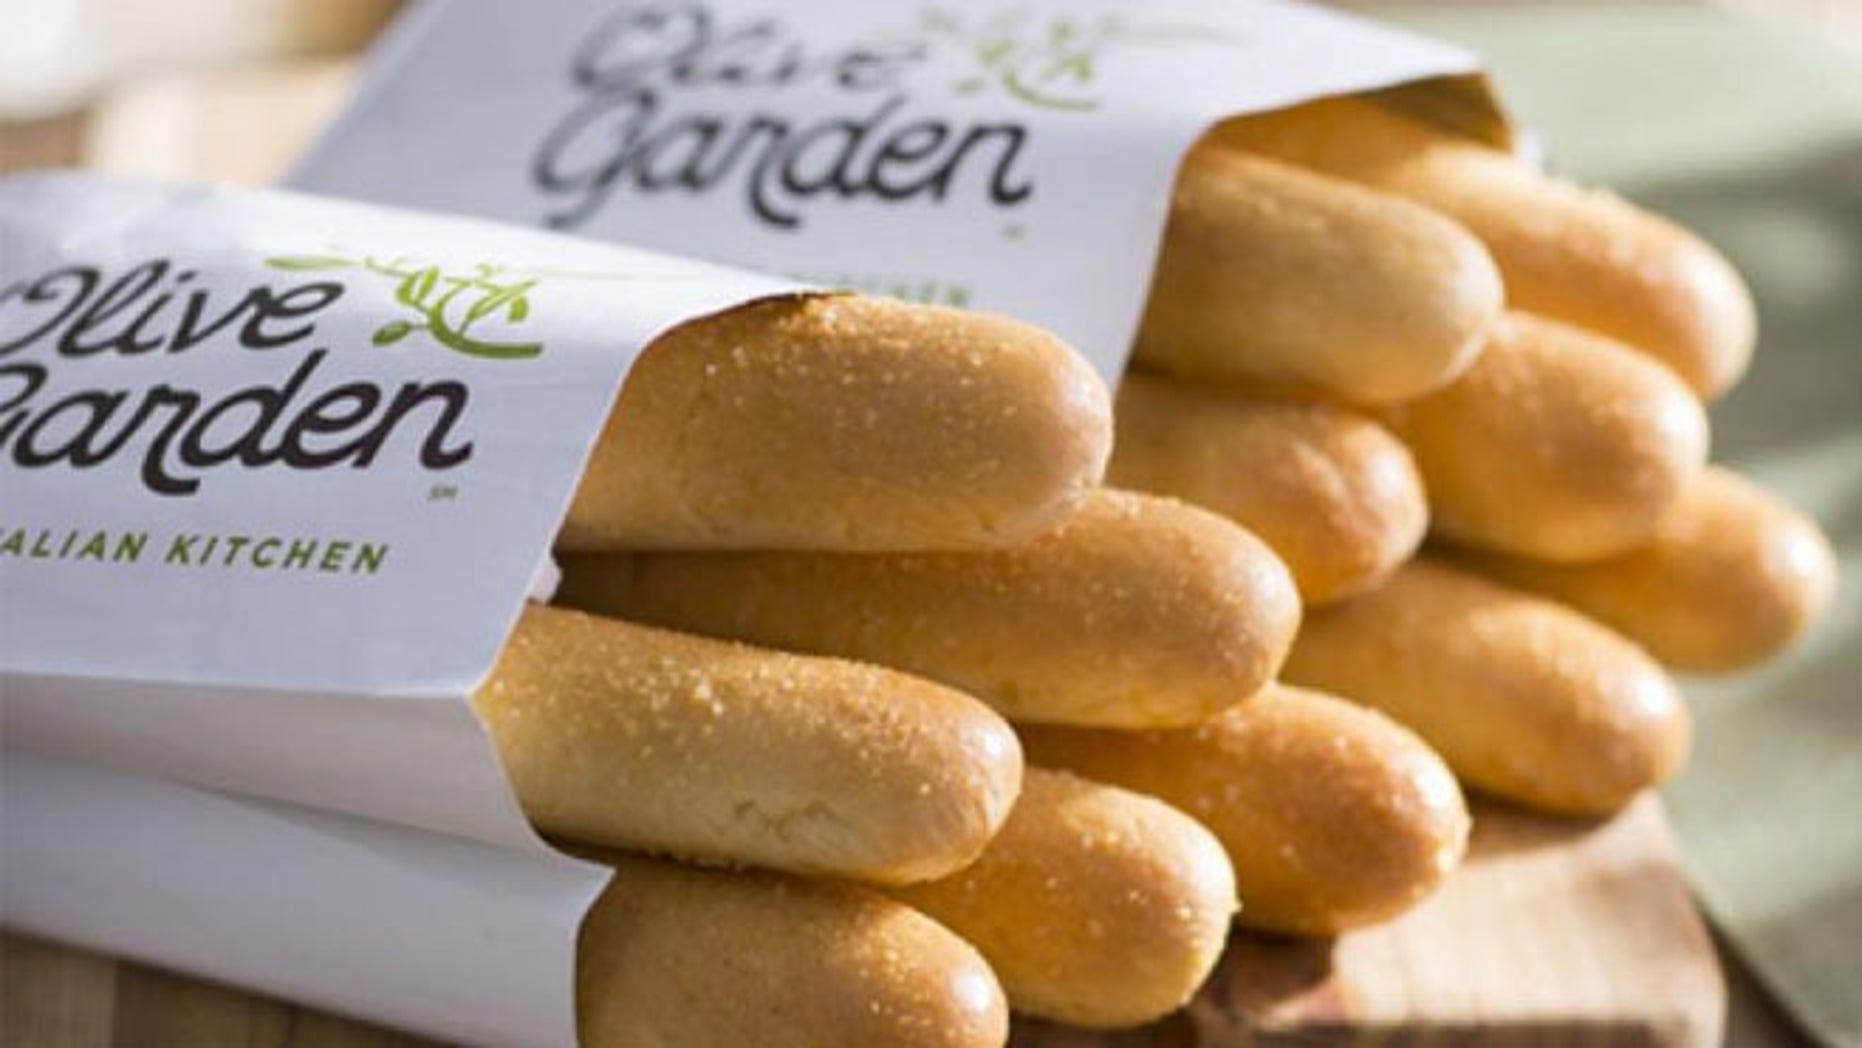 Olive Garden is coming up with another breadstick creation | Fox News